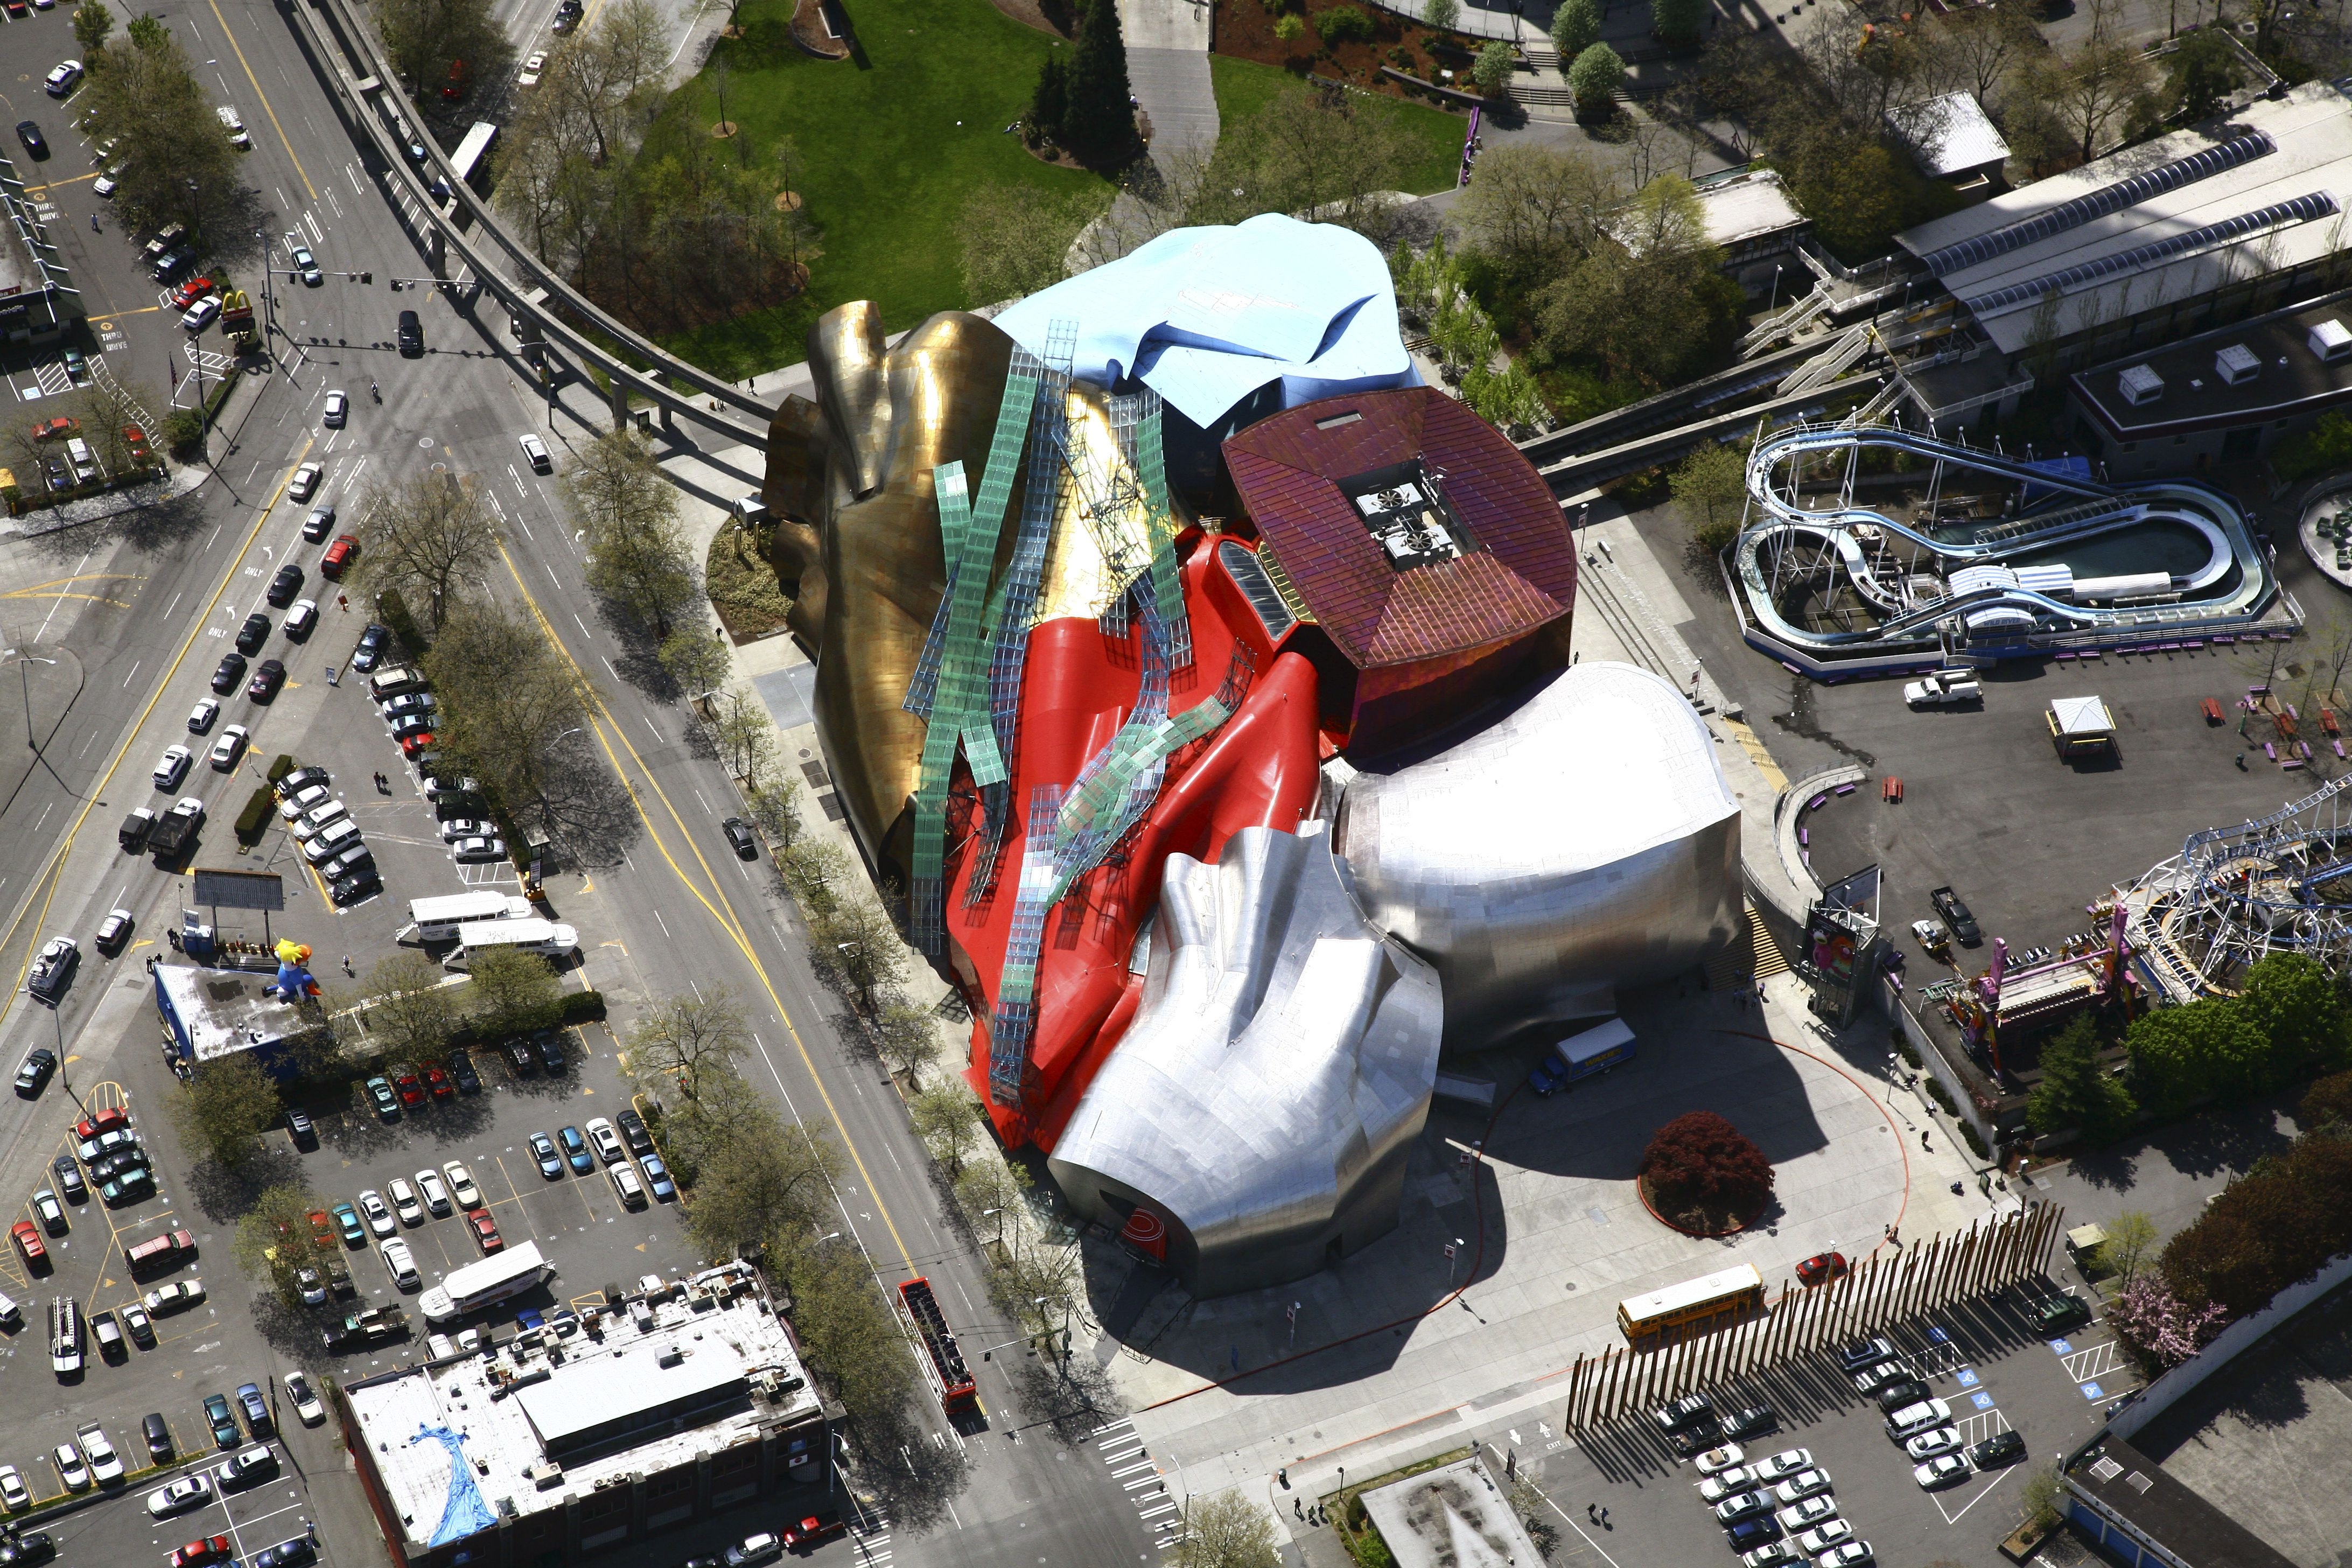 Aerial view of a music museum looks like a trash heap from above with a train running through it